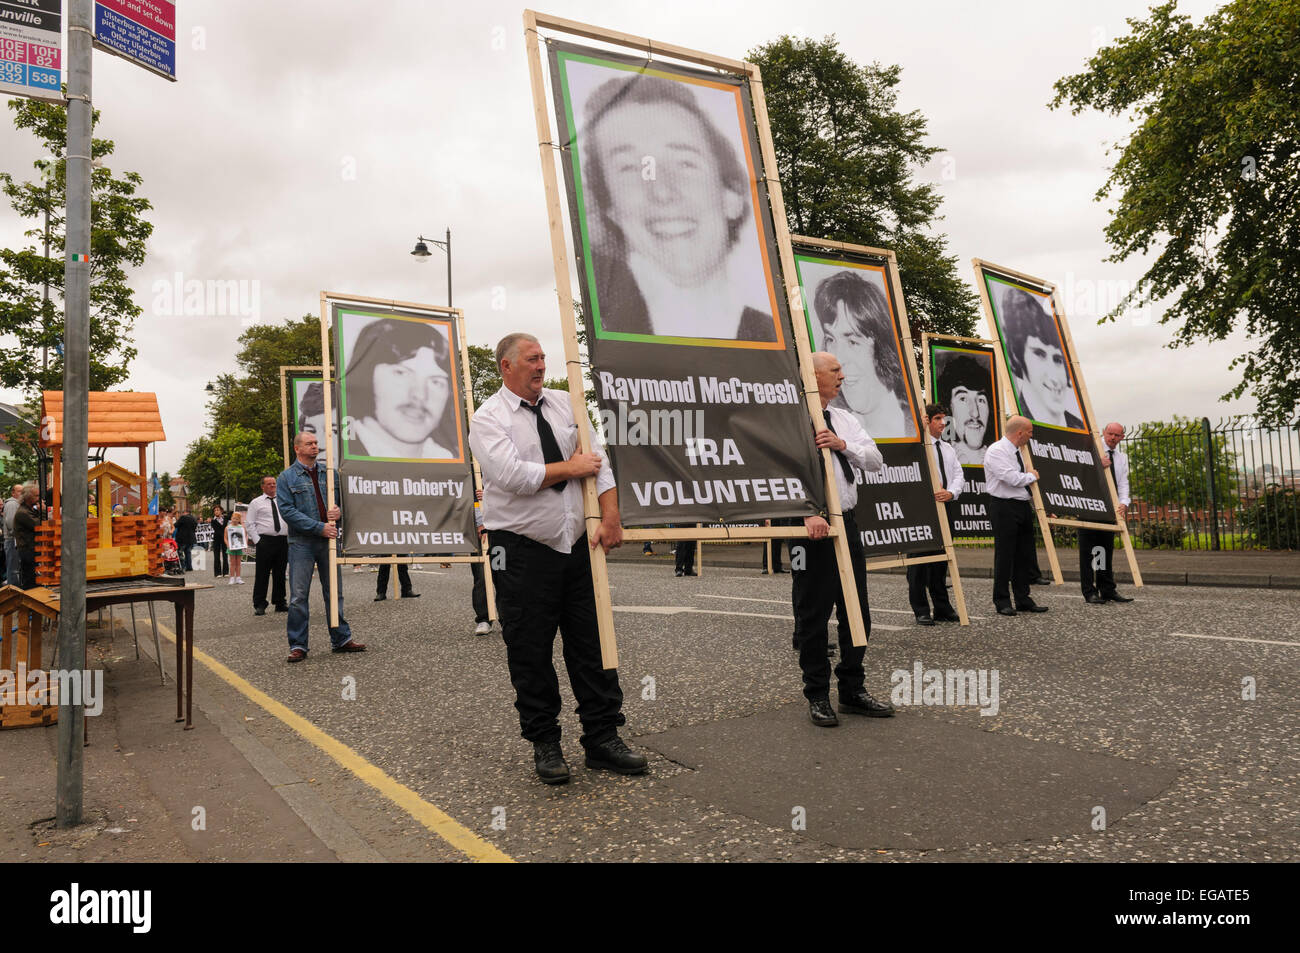 Dissident Republicans commemorate the 1981 Hunger Strikes with a picture of Raymond McCreesh - Stock Image